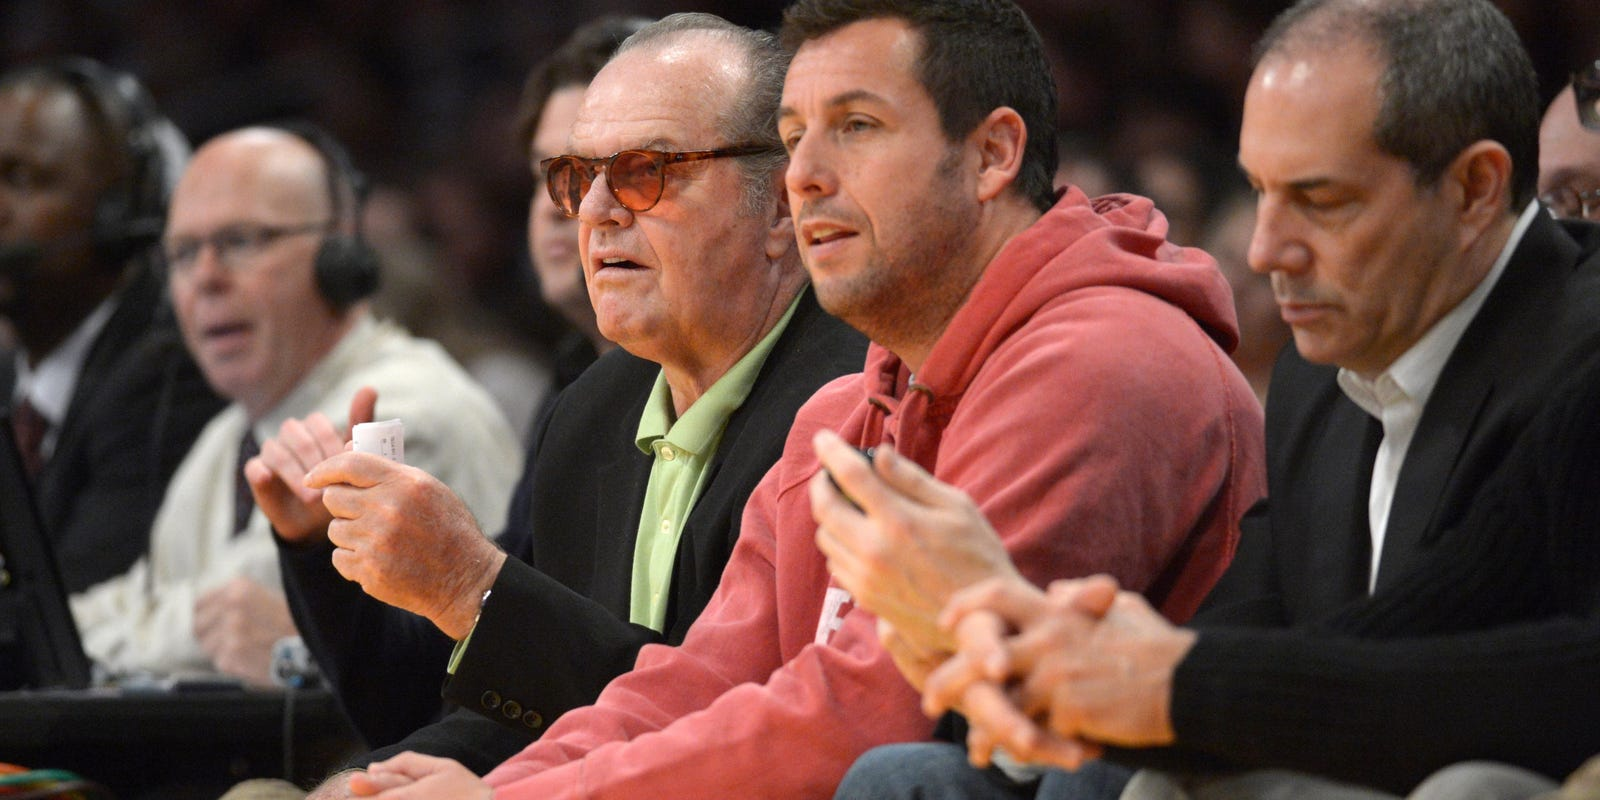 Jack Nicholson Adam Sandler Walk Out Early On Lakers